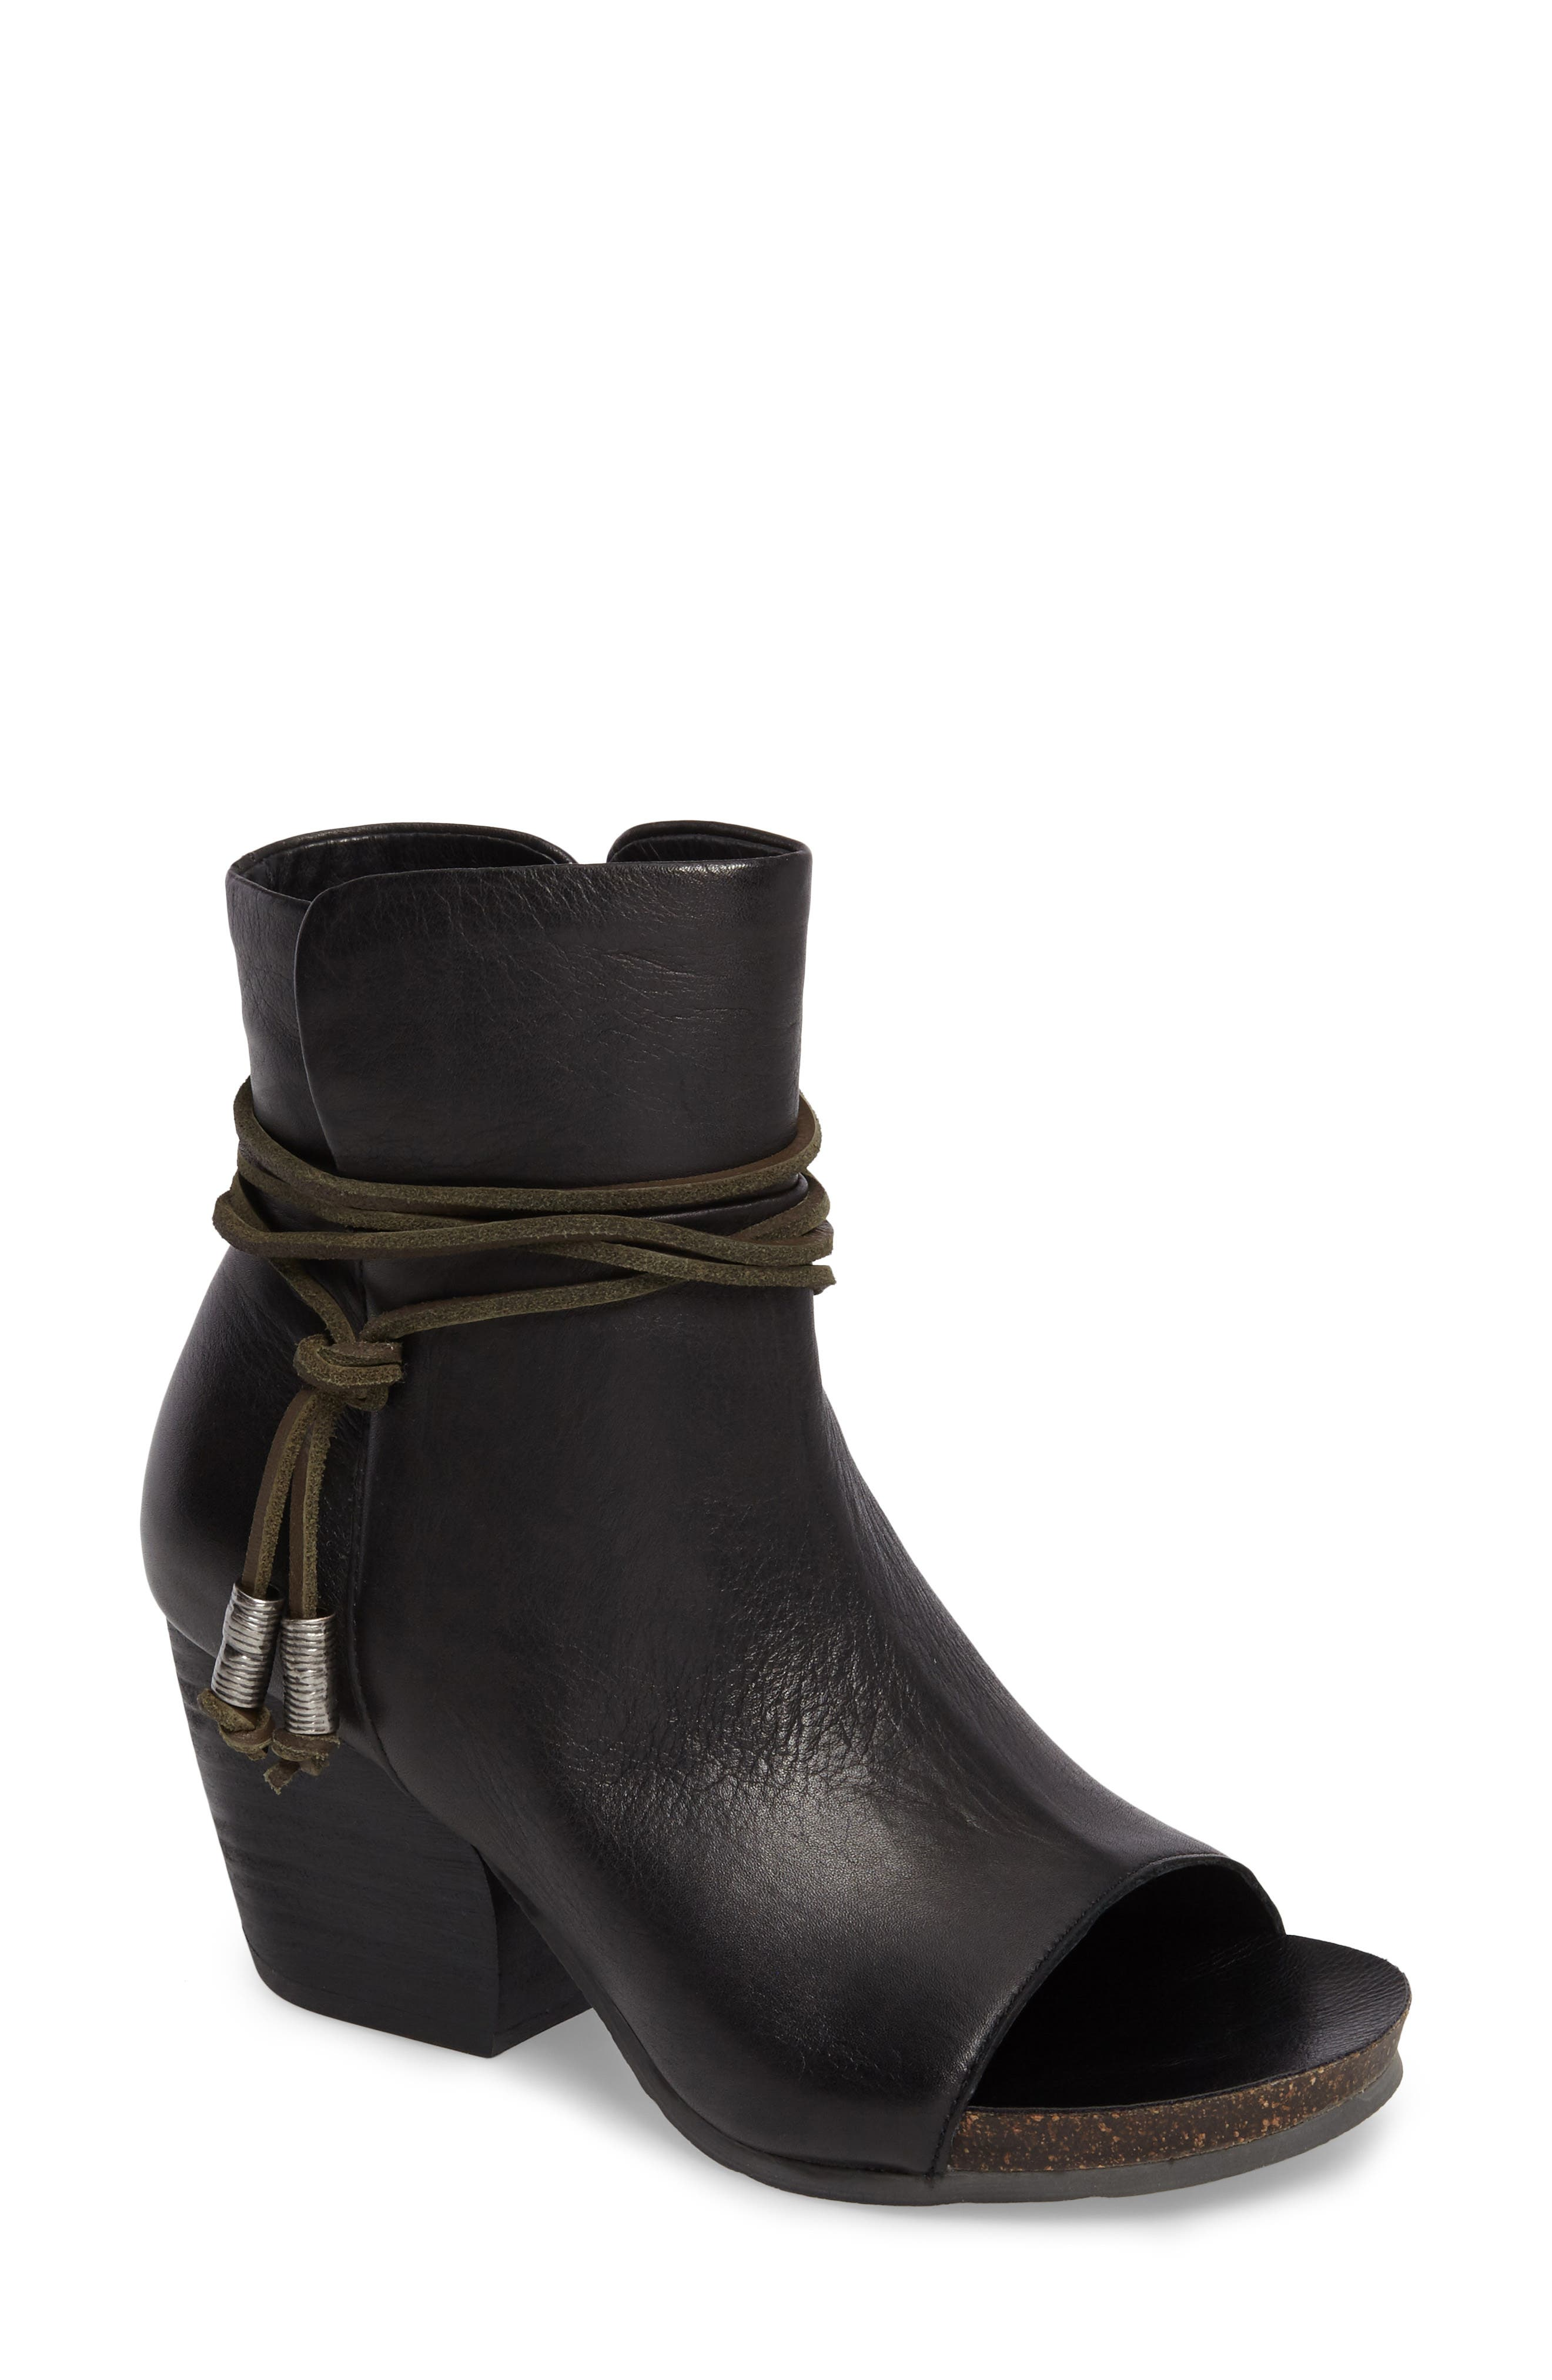 Open Toe Bootie,                         Main,                         color, Black Leather